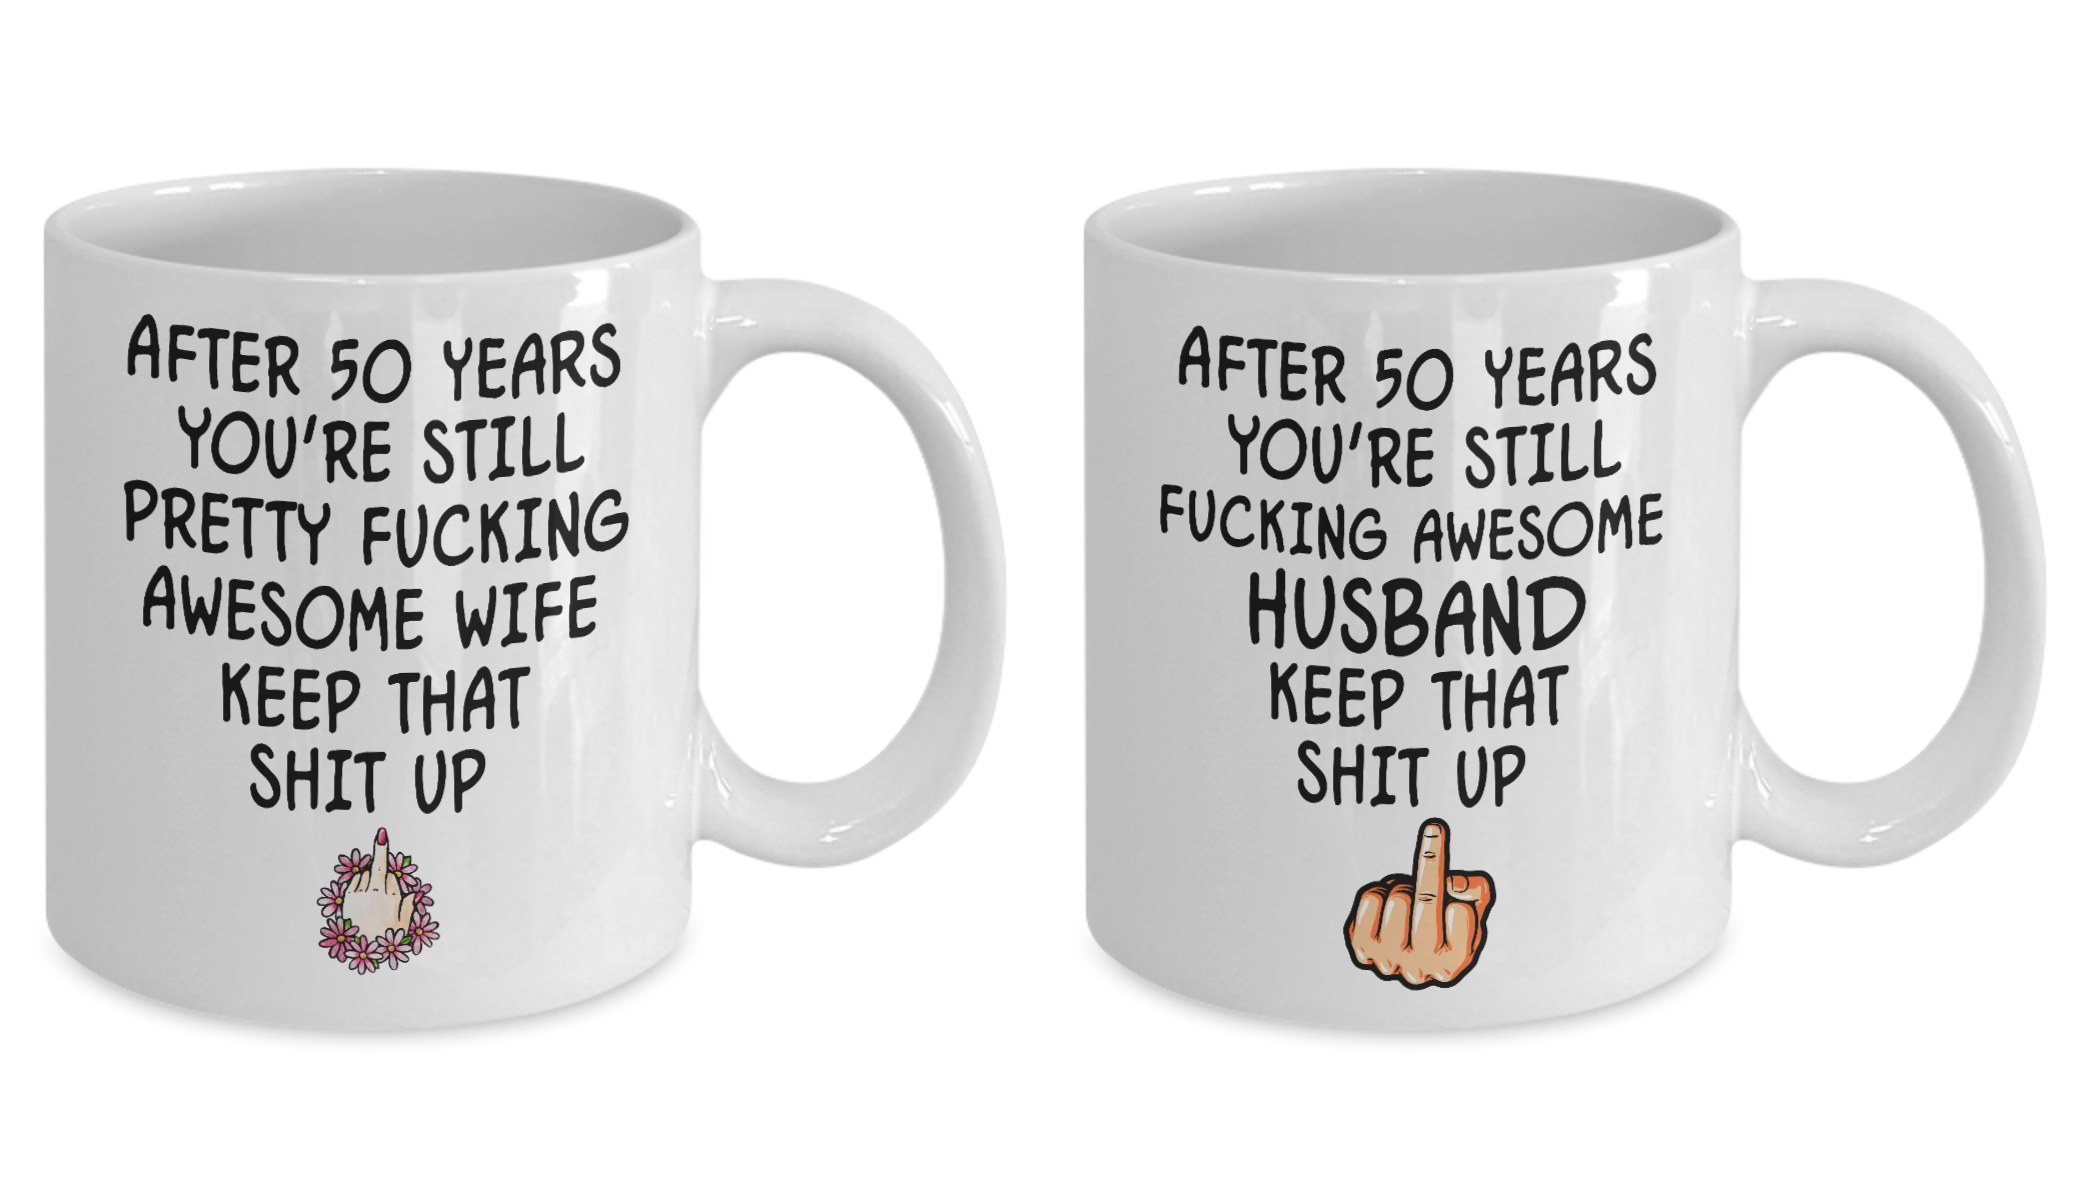 Wedding Gifts For Women: 50 Yr Anniversary Gifts For Couple Men Women Her Him Wife